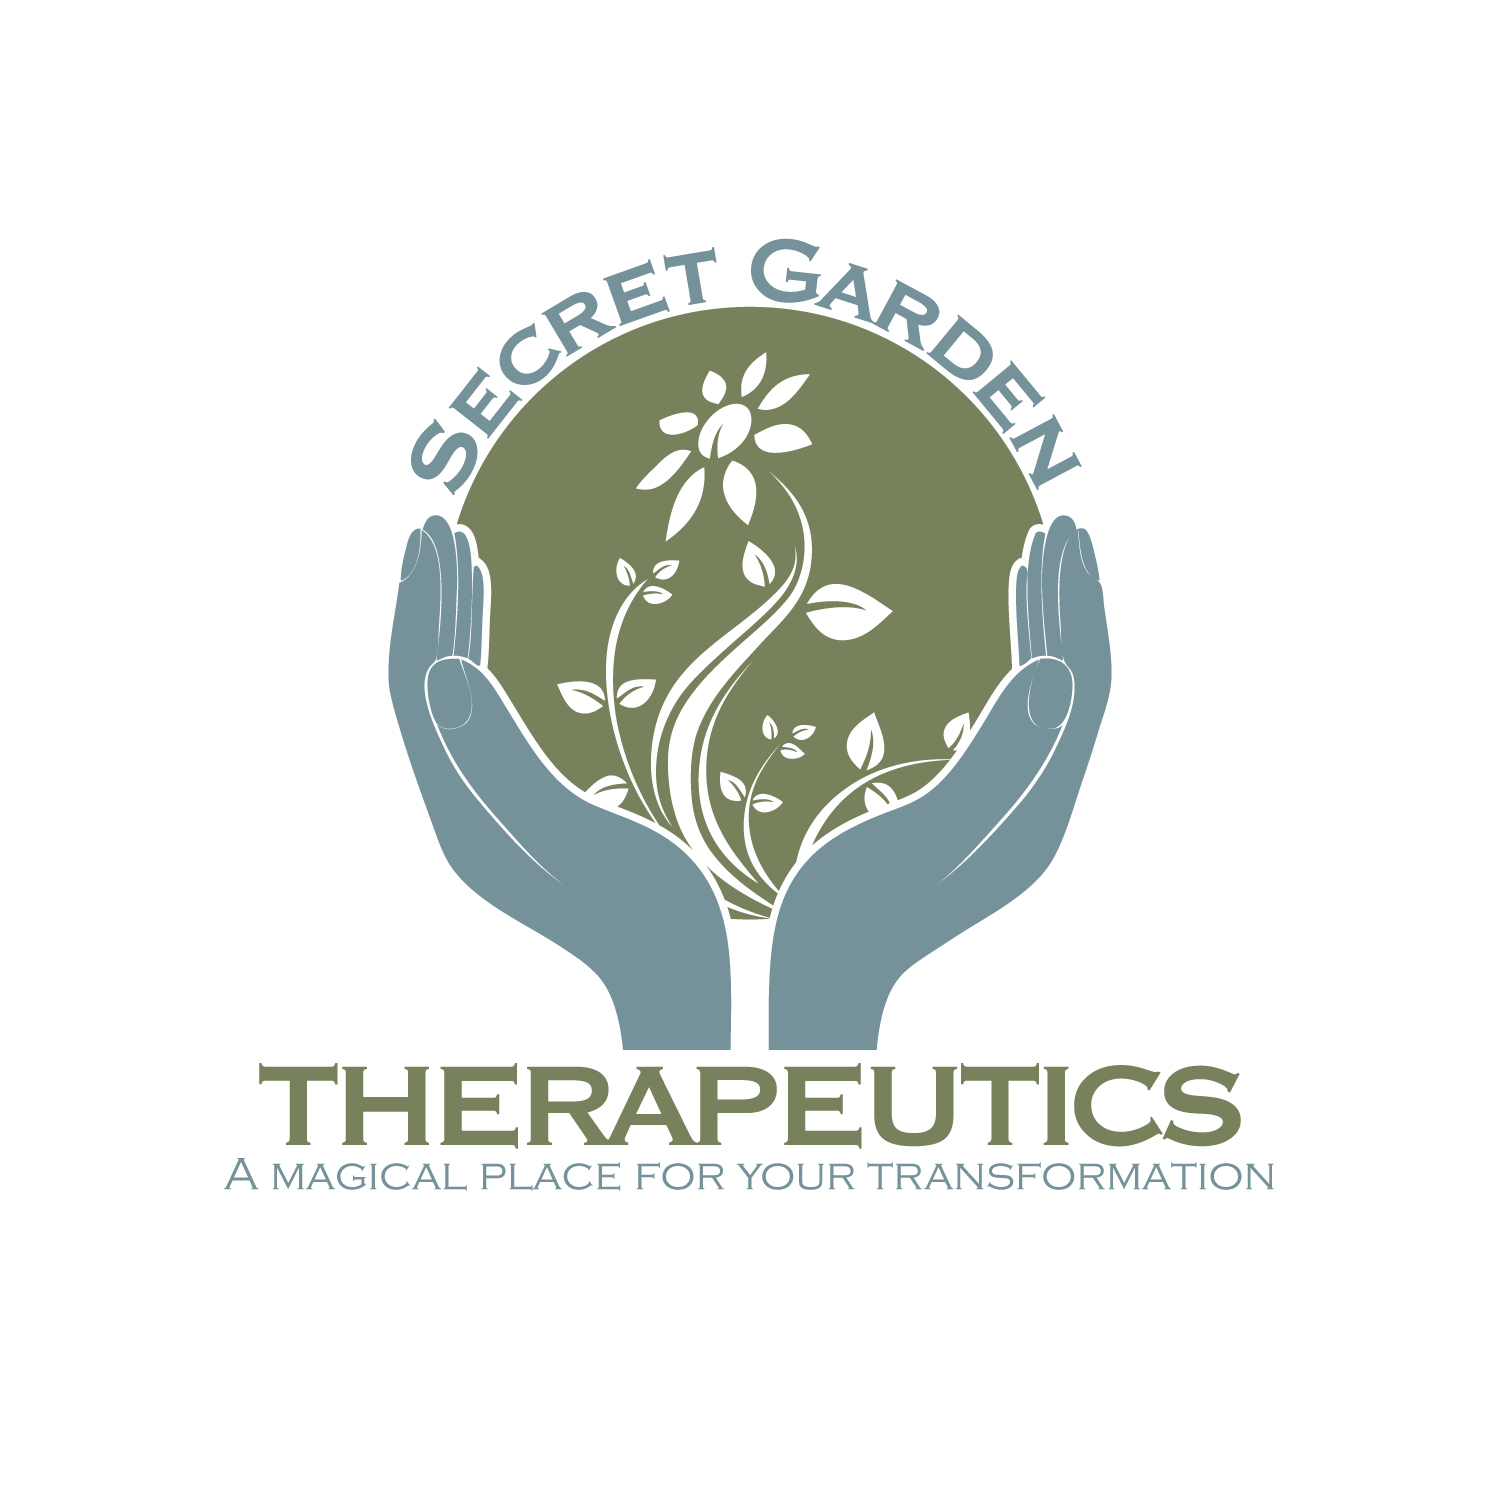 Secret Garden Therapeutics